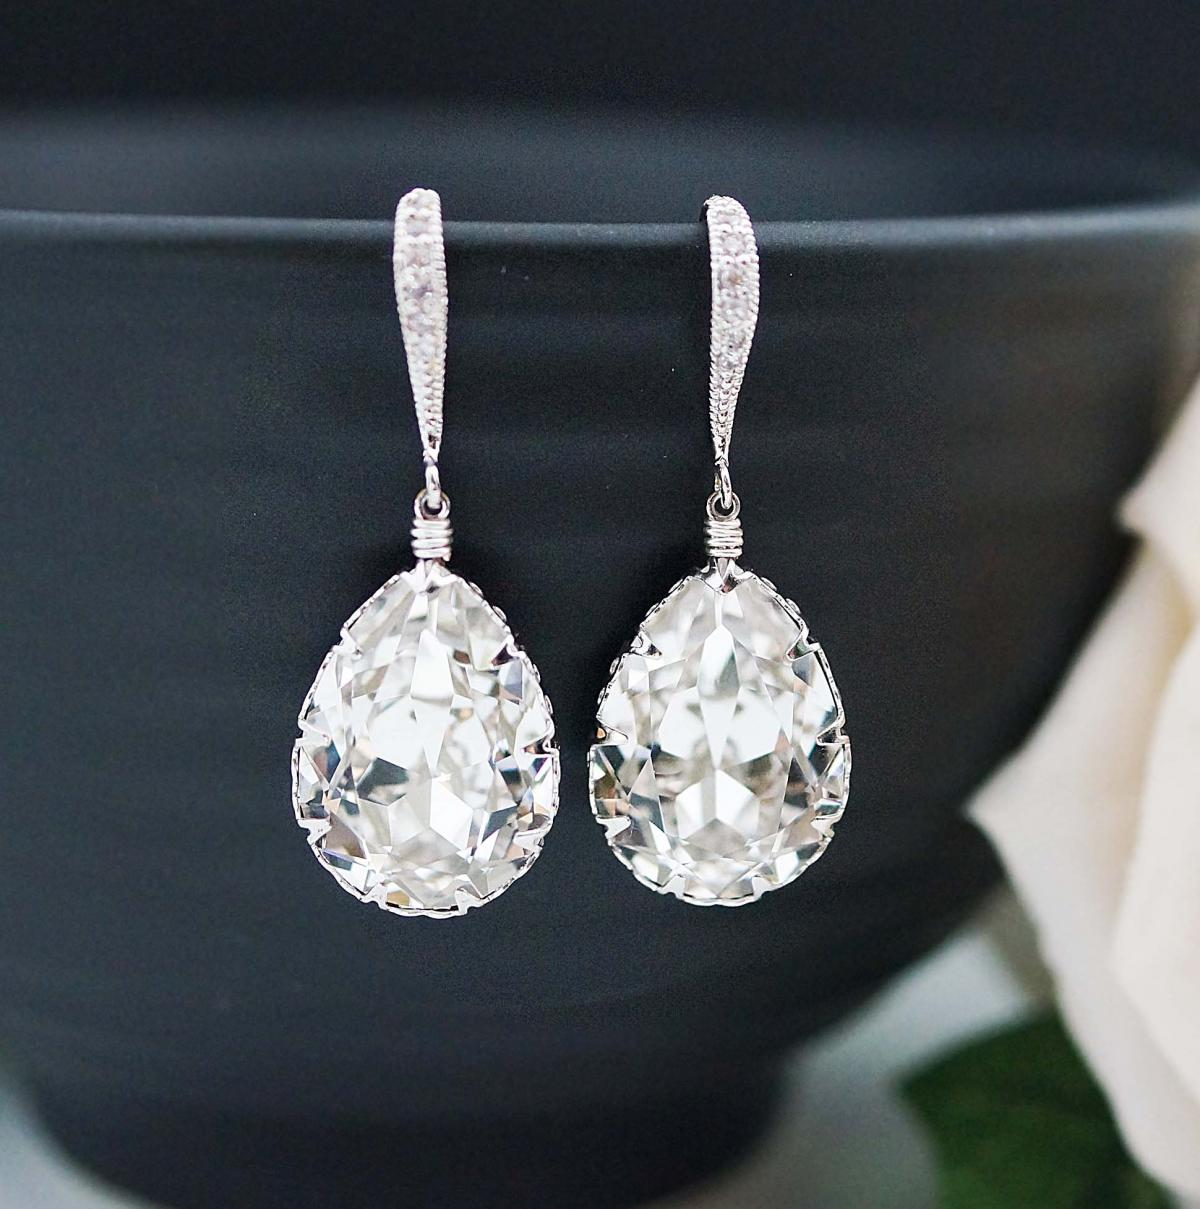 Bridal jewelry earrings : Wedding jewelry bridal earrings bridesmaid dangle